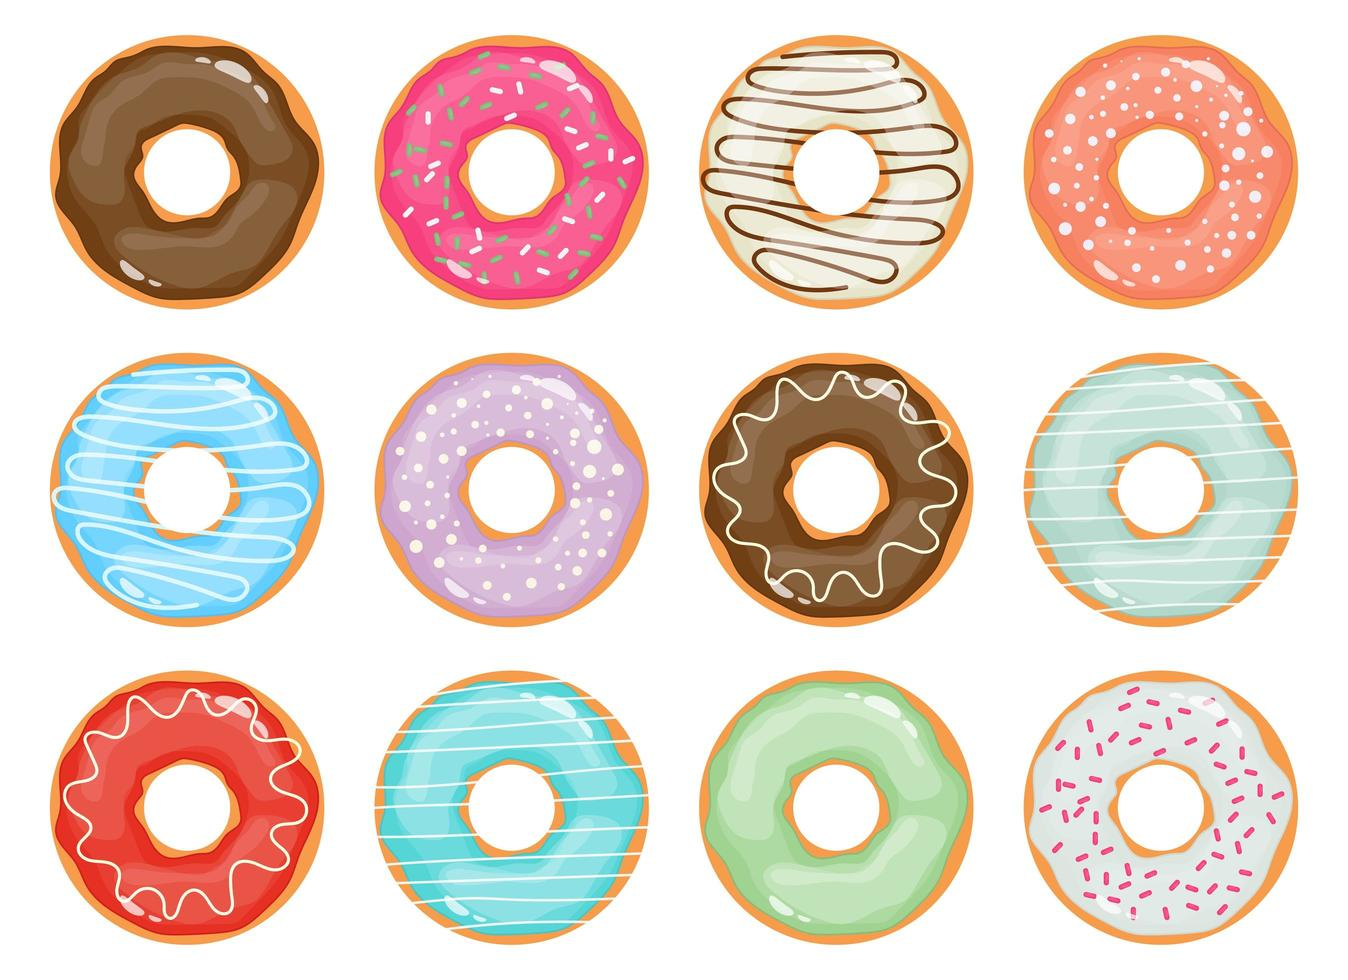 Doughnuts collection vector design illustration isolated on white background